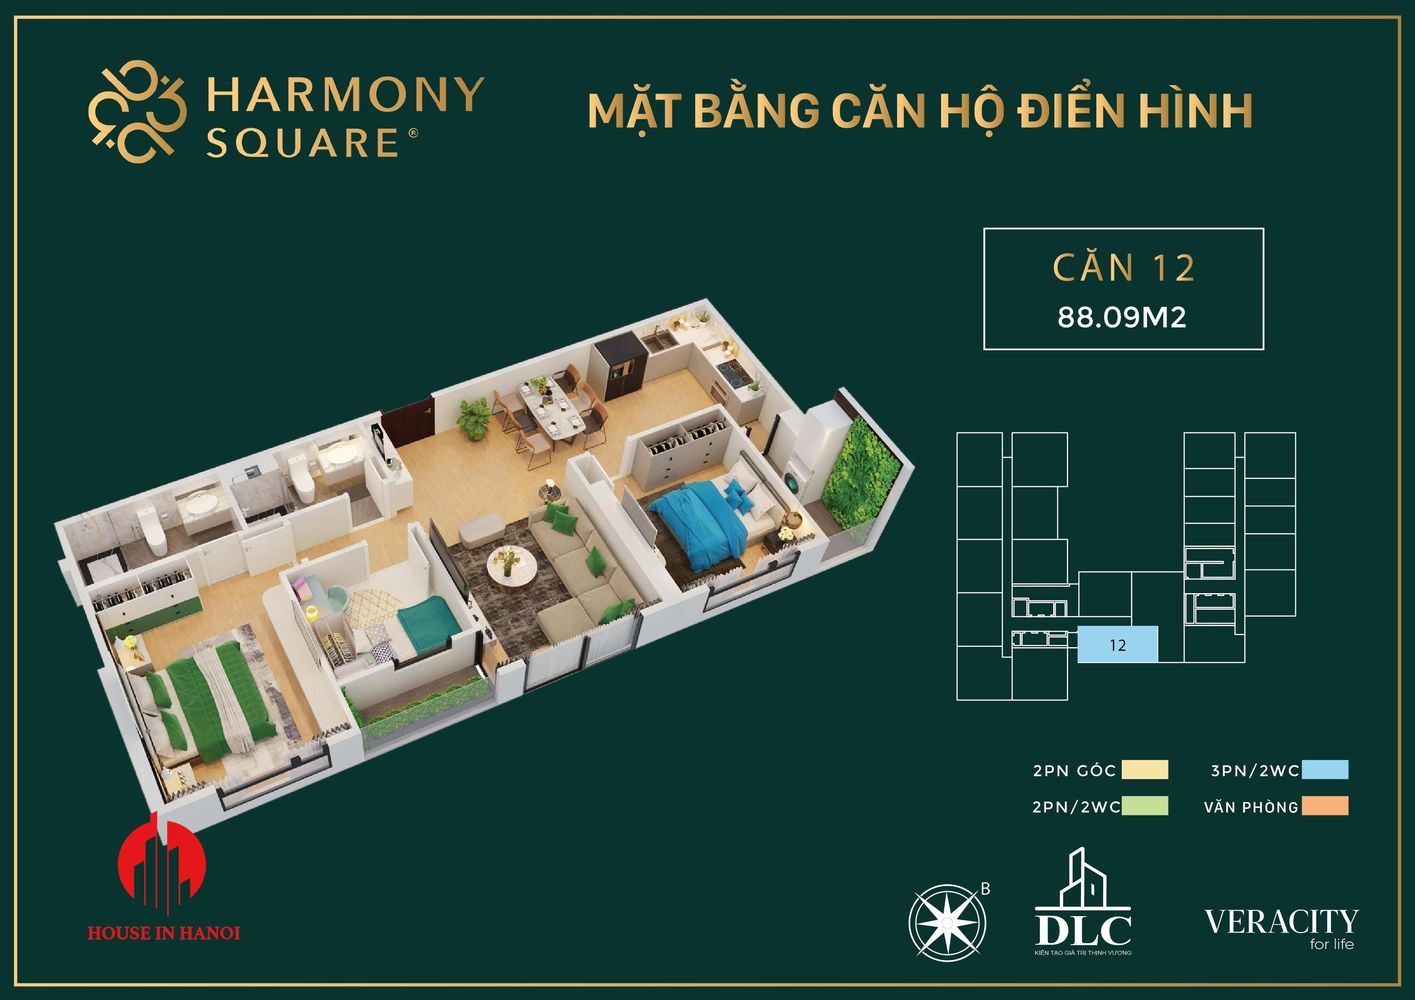 harmony square floor plan 1